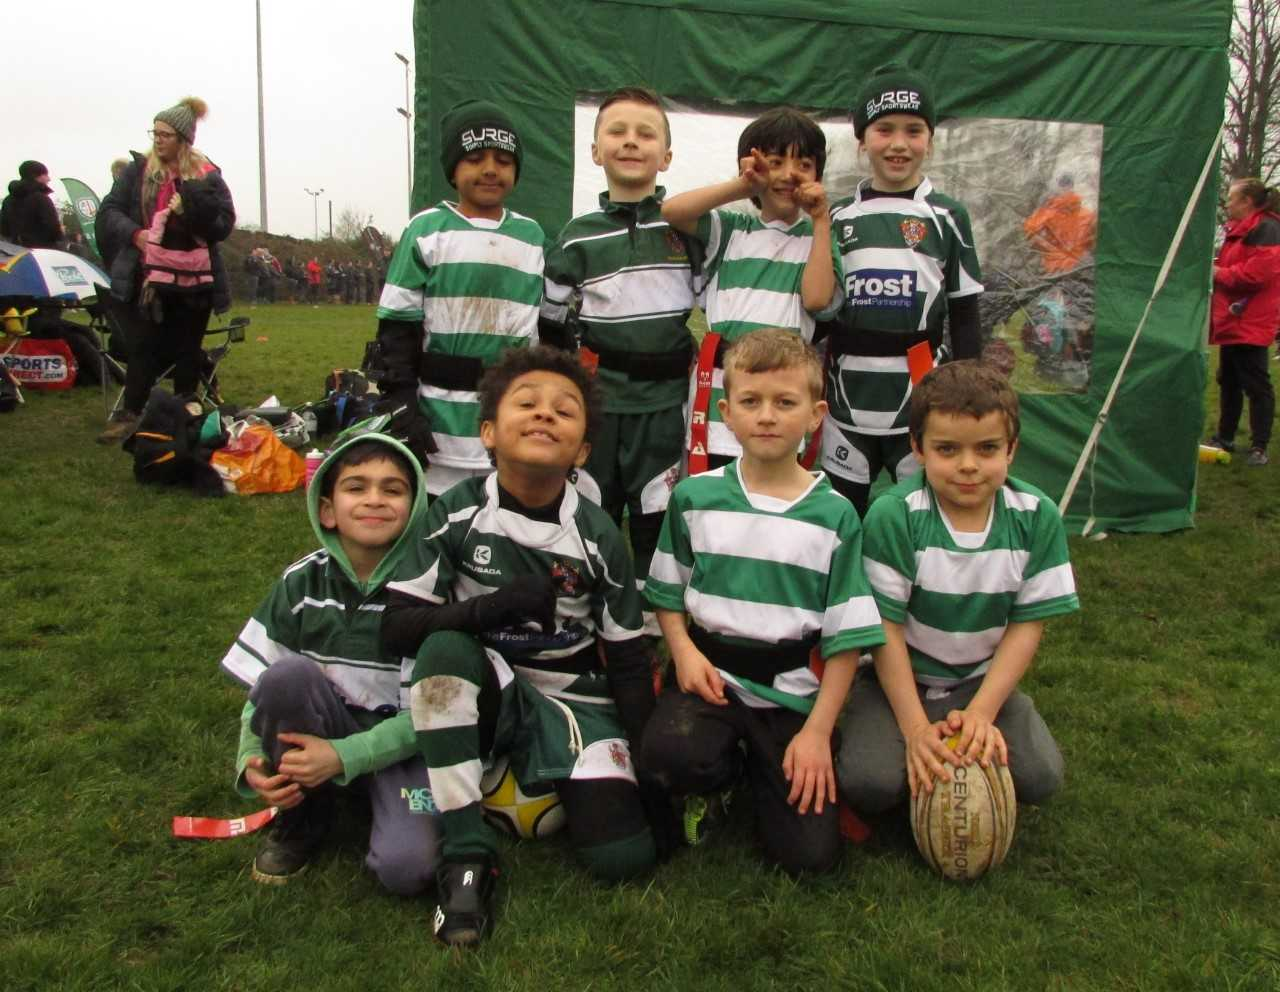 The Slough under-8 team at the London Irish St Patrick's Day festival.